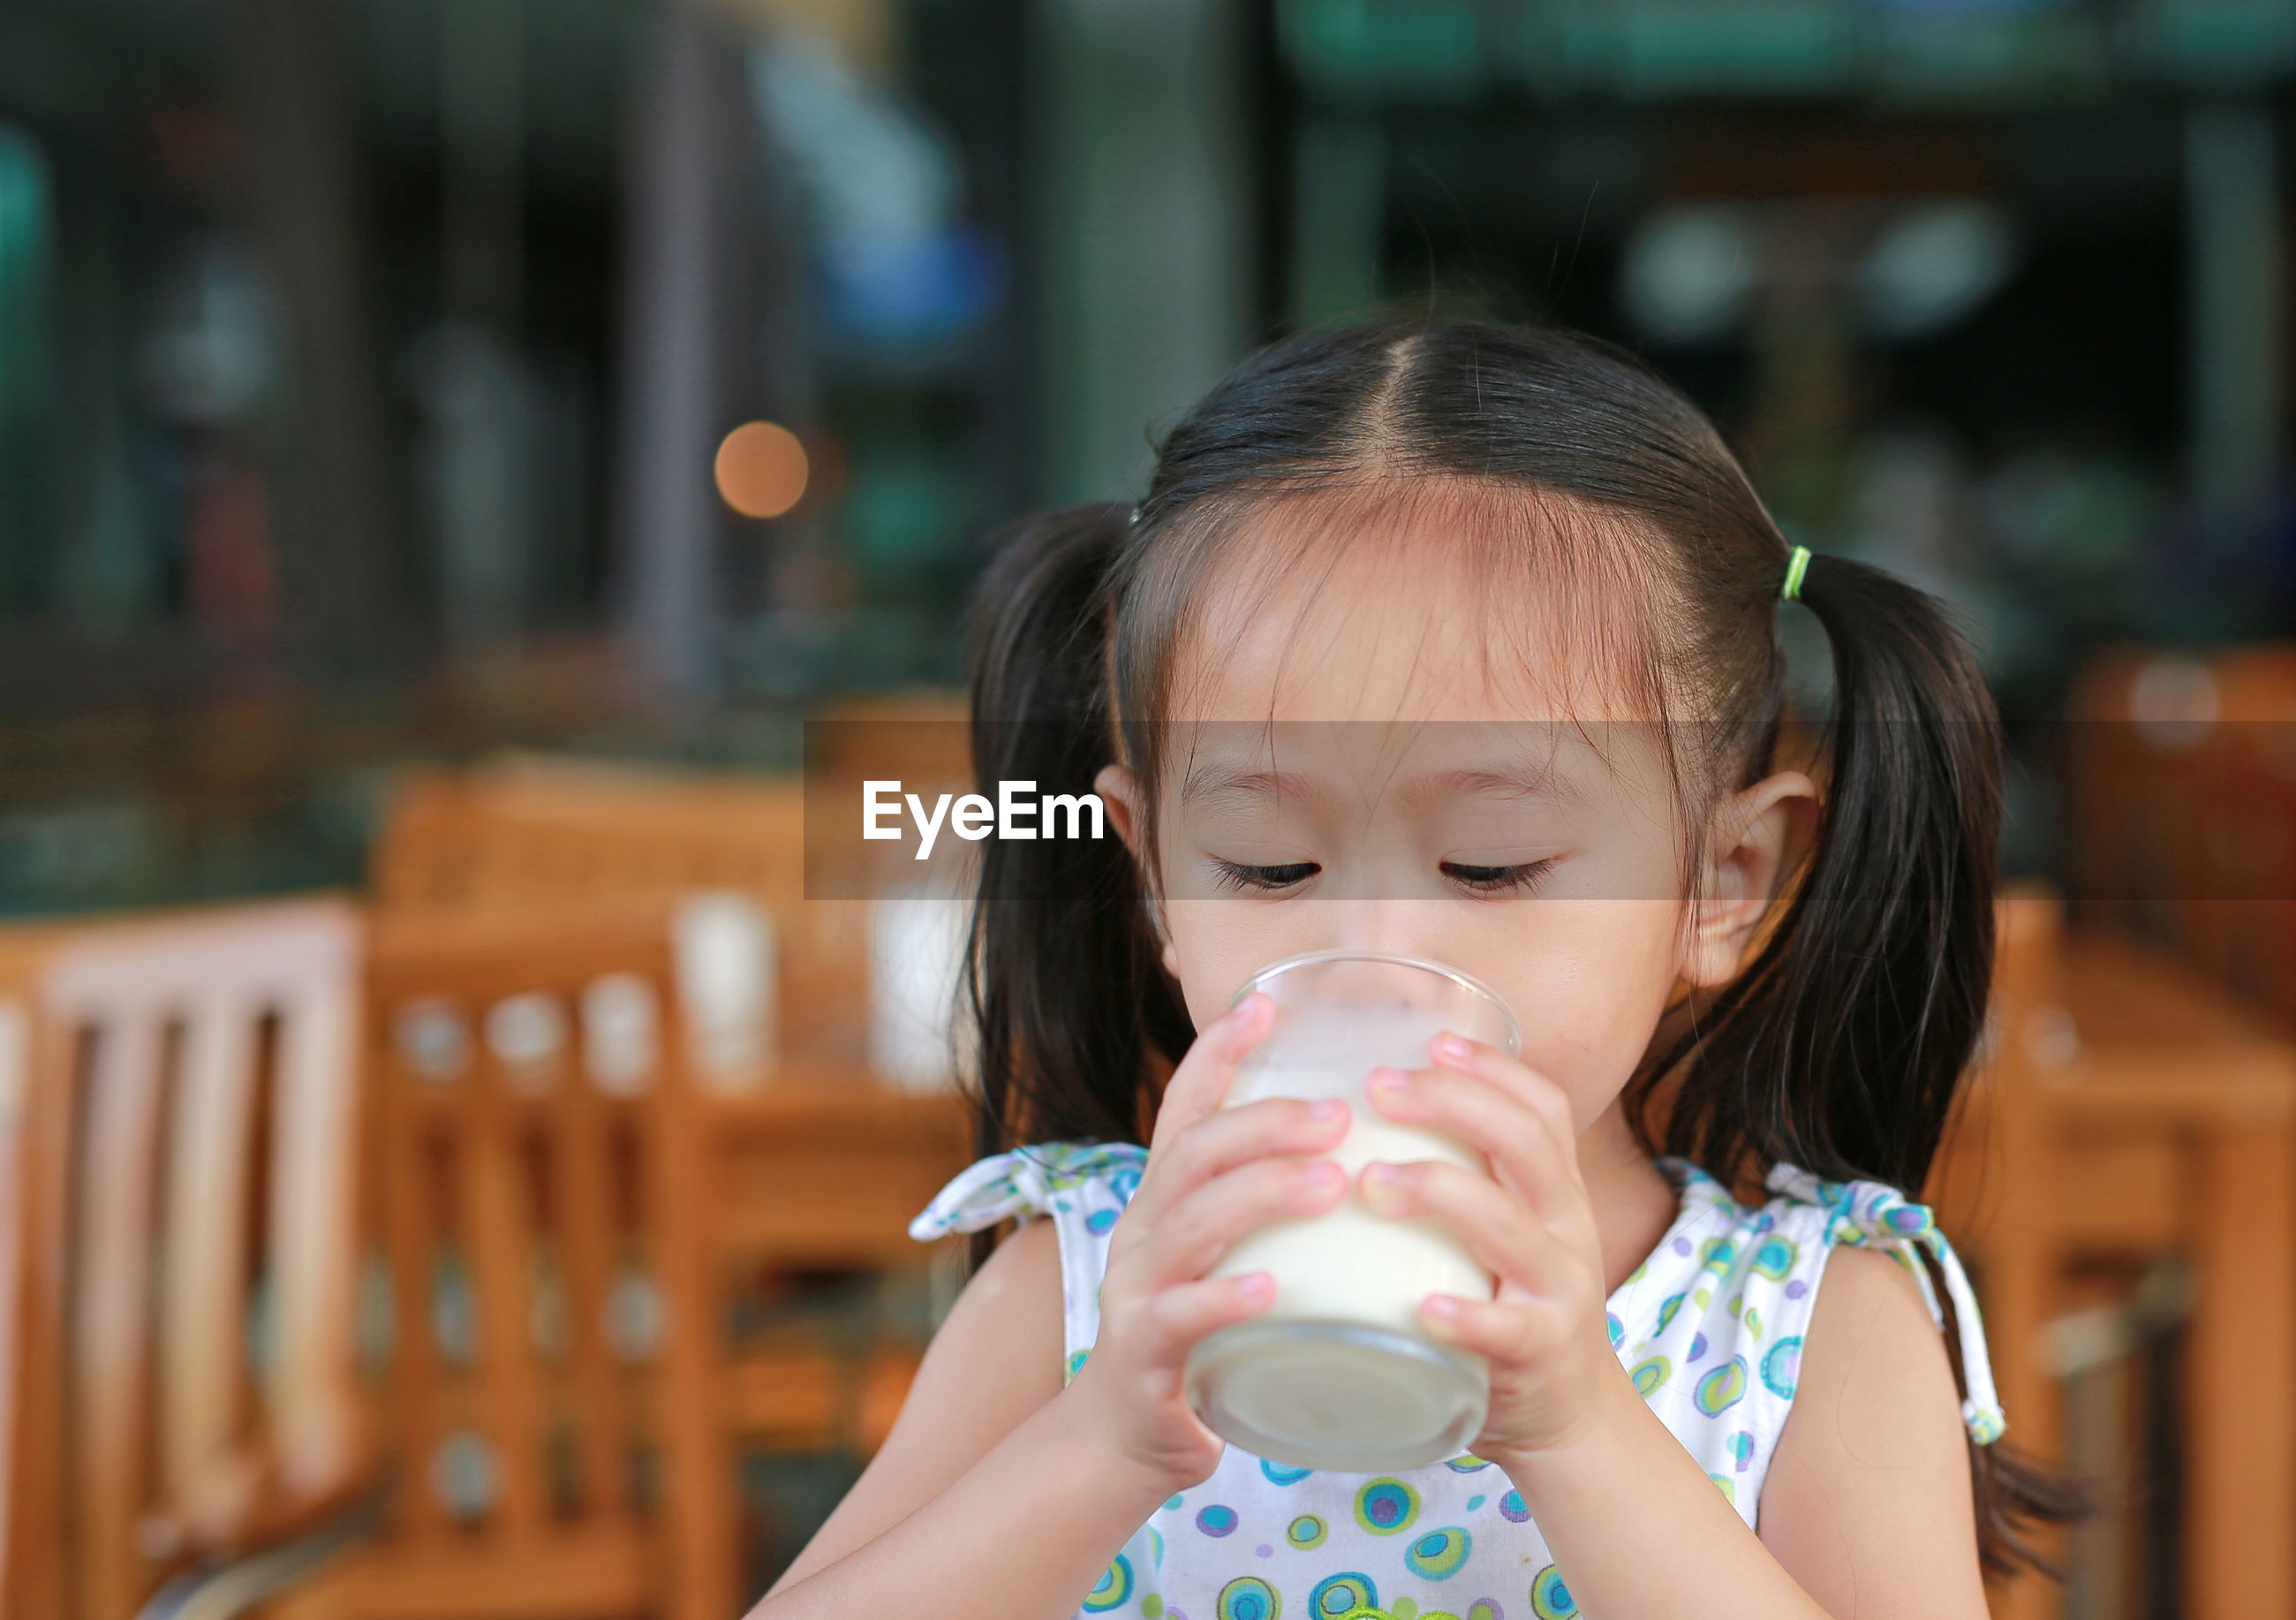 Girl drinking milk from glass at cafe